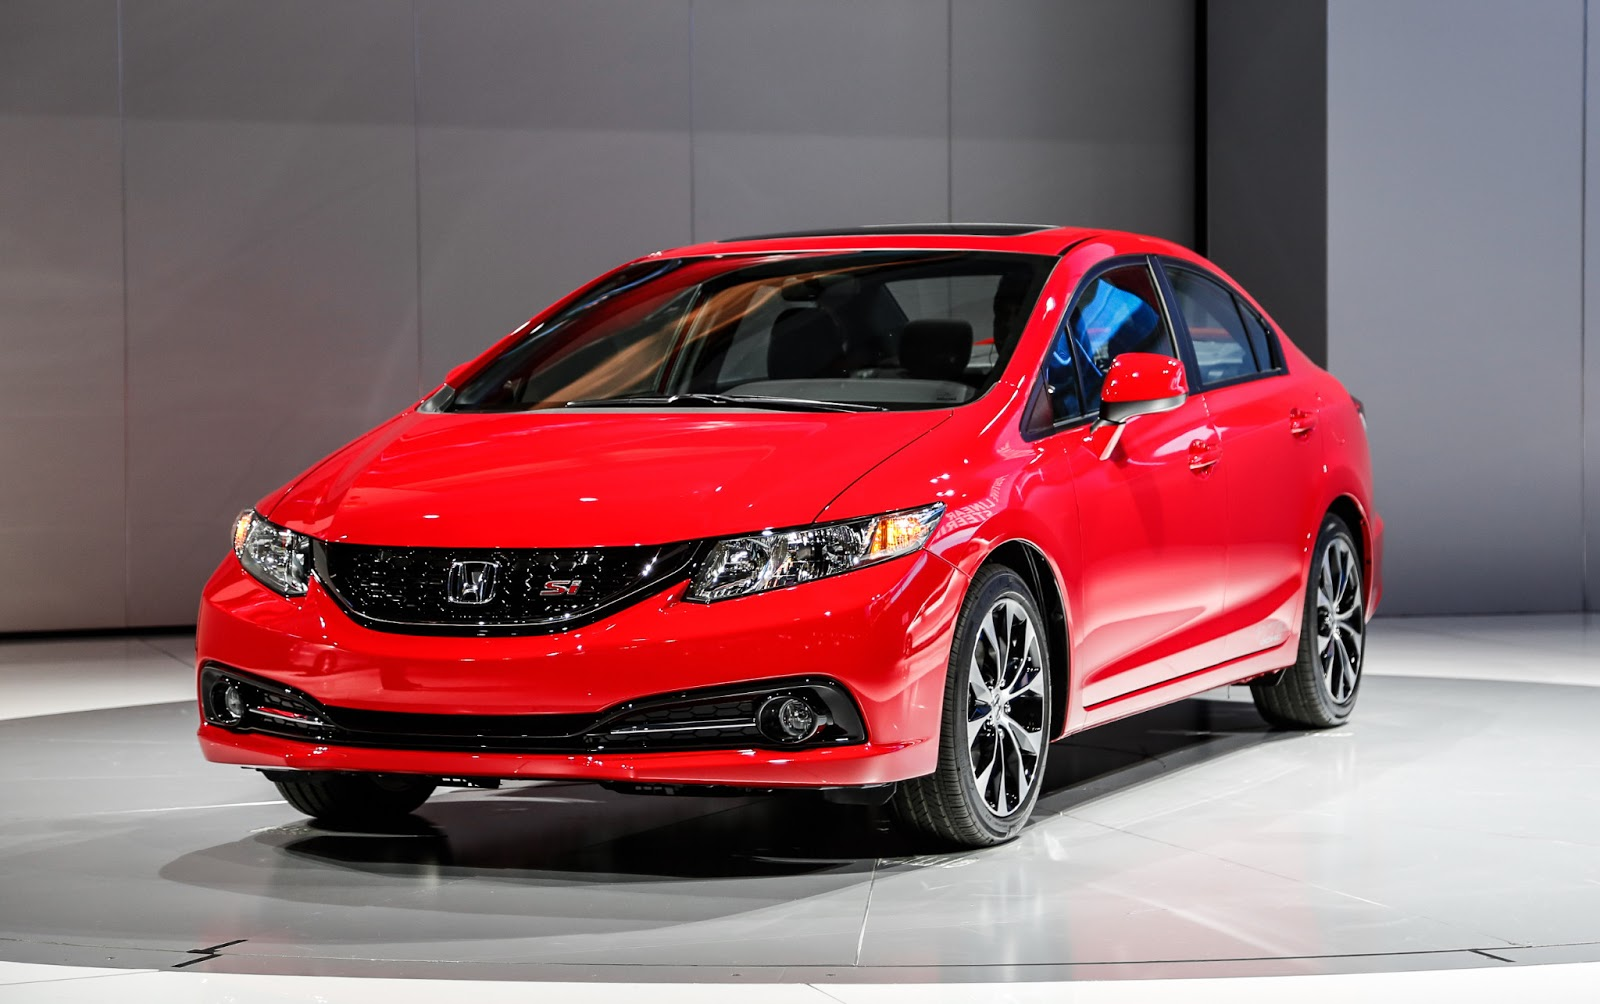 2013 honda civic si sedan new cars reviews. Black Bedroom Furniture Sets. Home Design Ideas